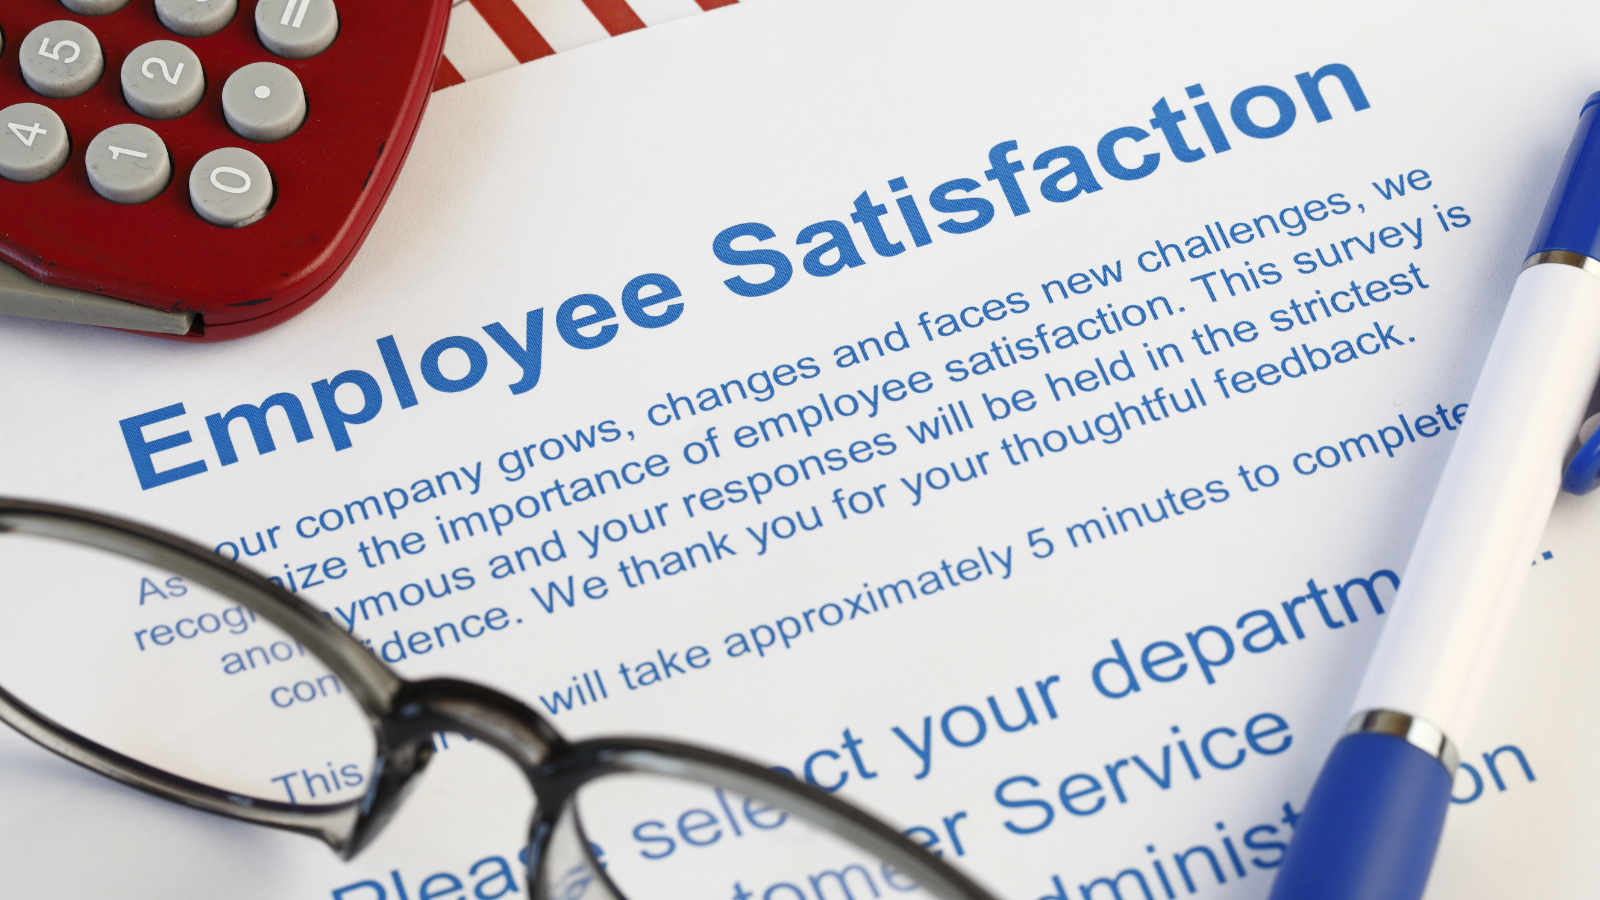 Employee Engagement Surveys: What to Do Next